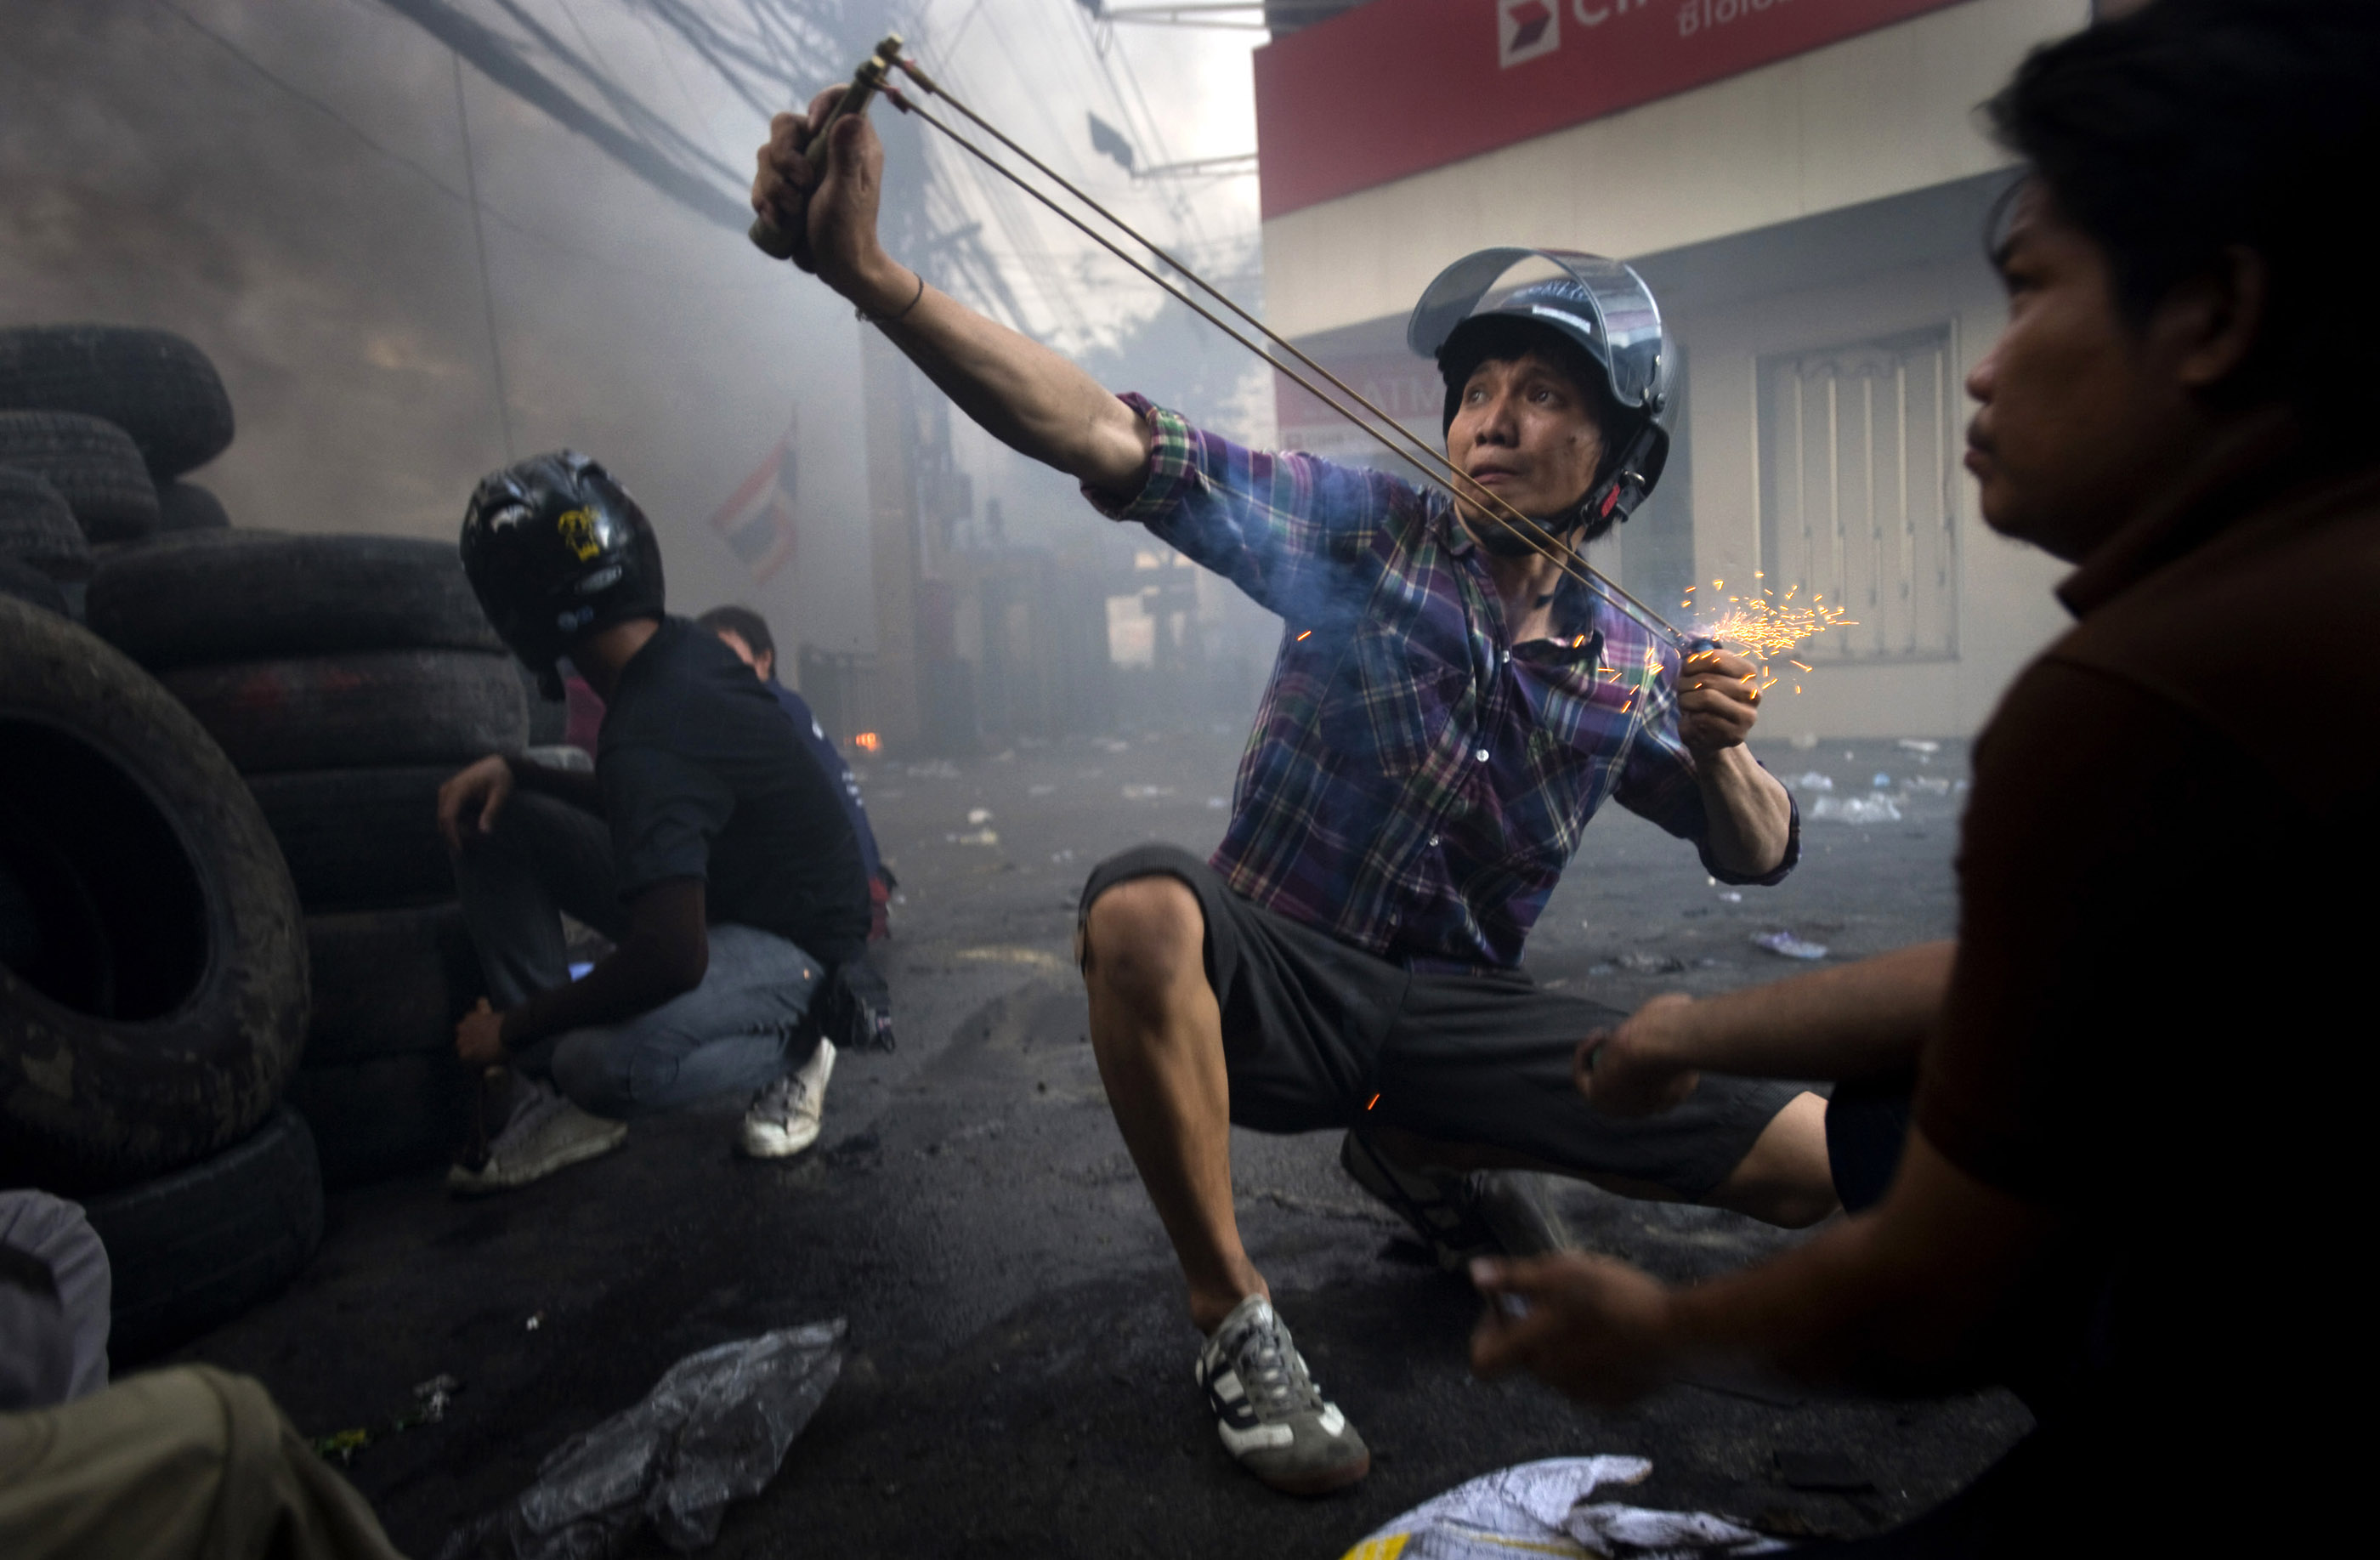 A protester launches a firework in the direction of a military checkpoint.